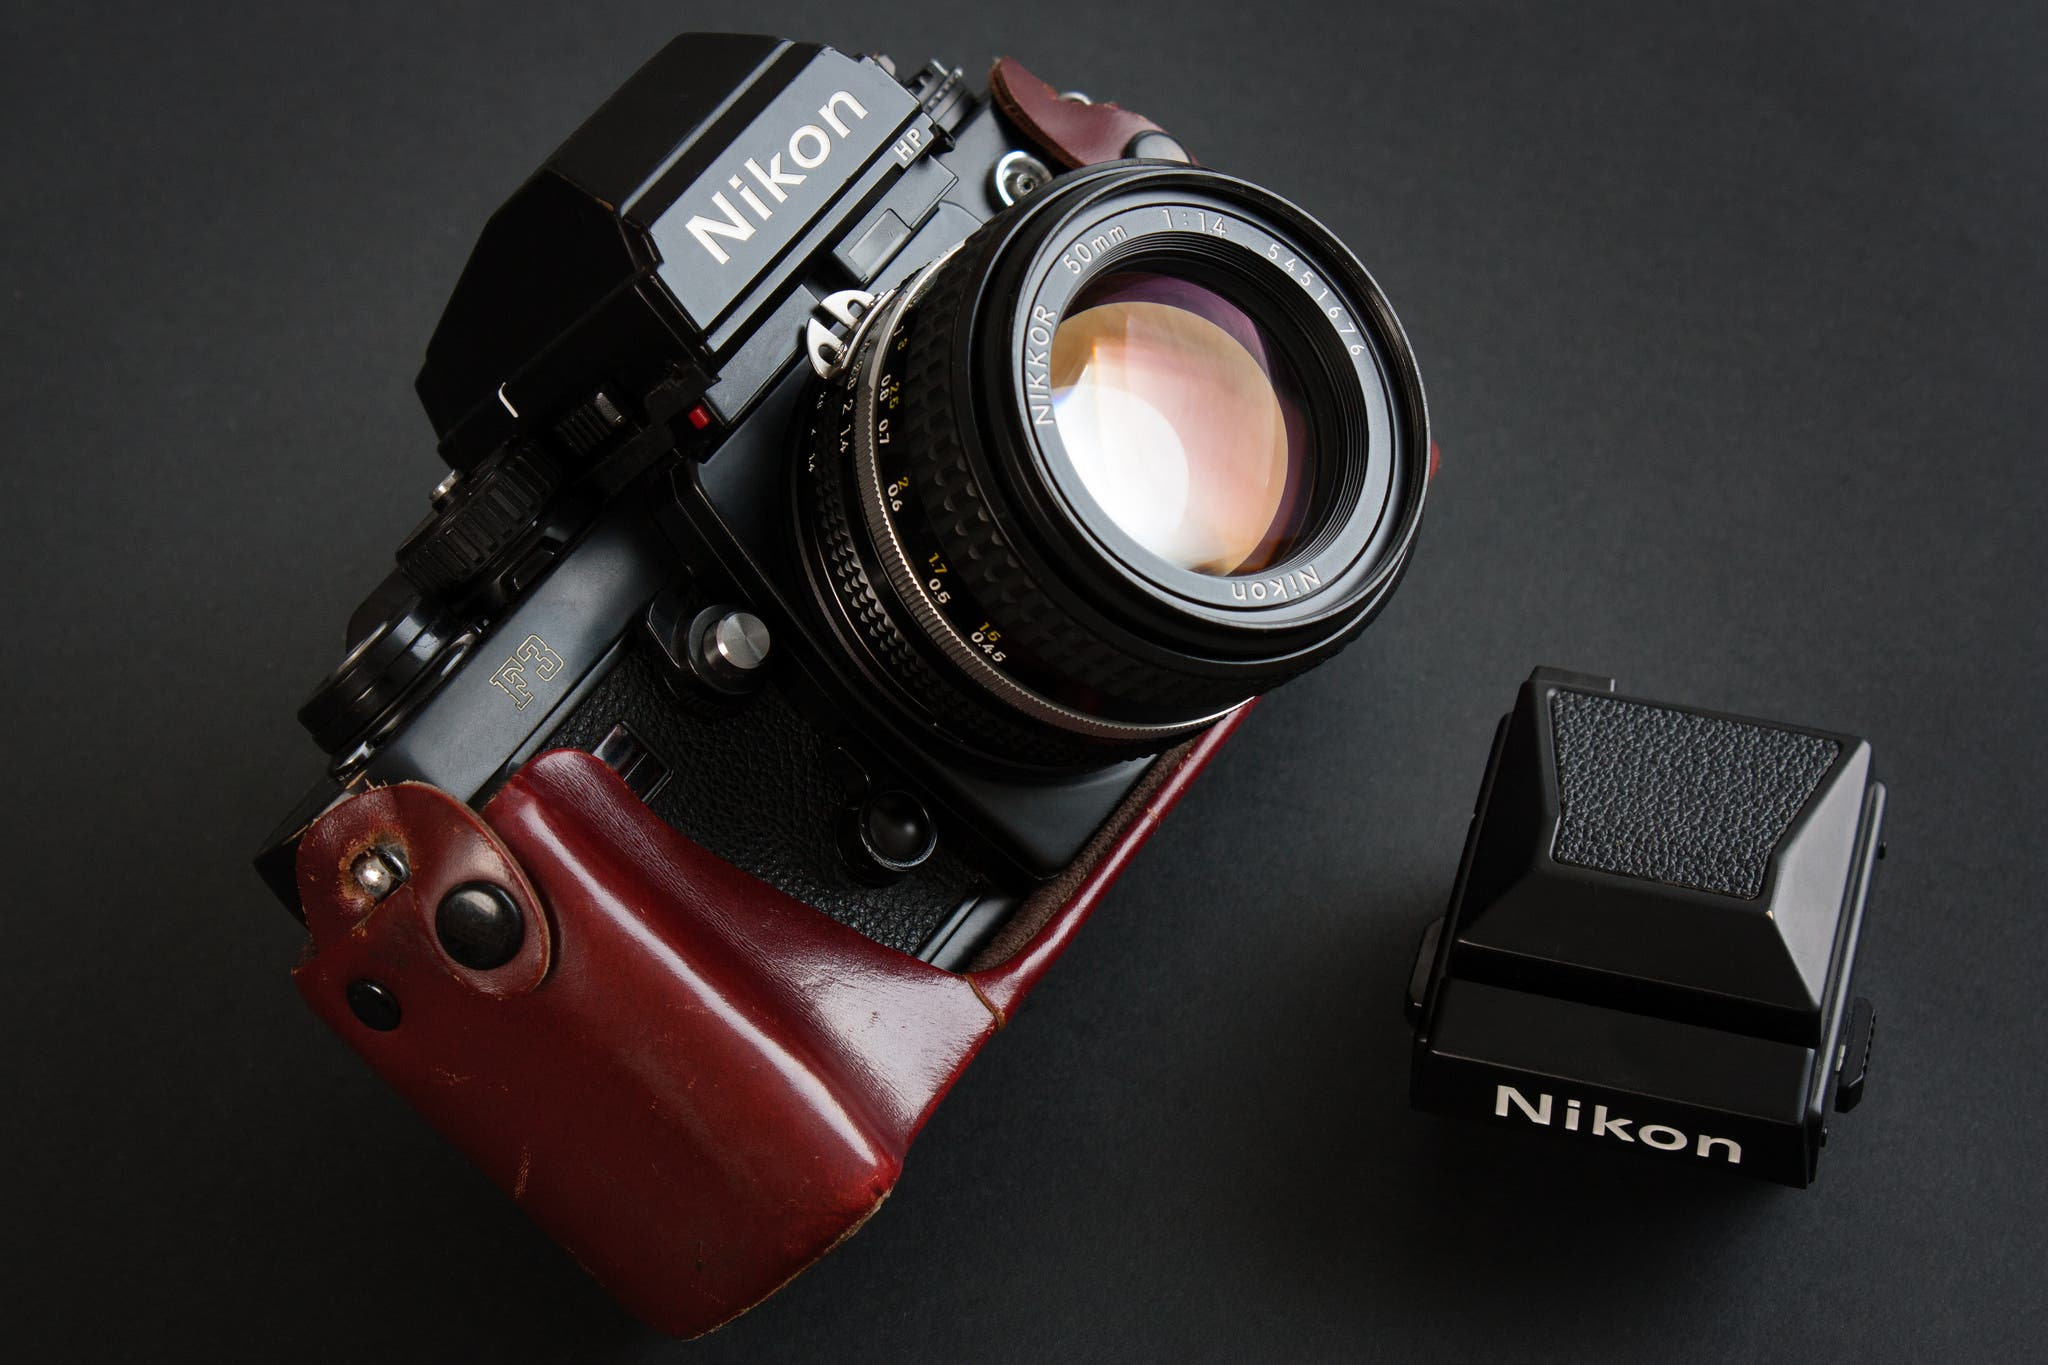 nikon announces new nikon f3 with interchangeable viewfinder